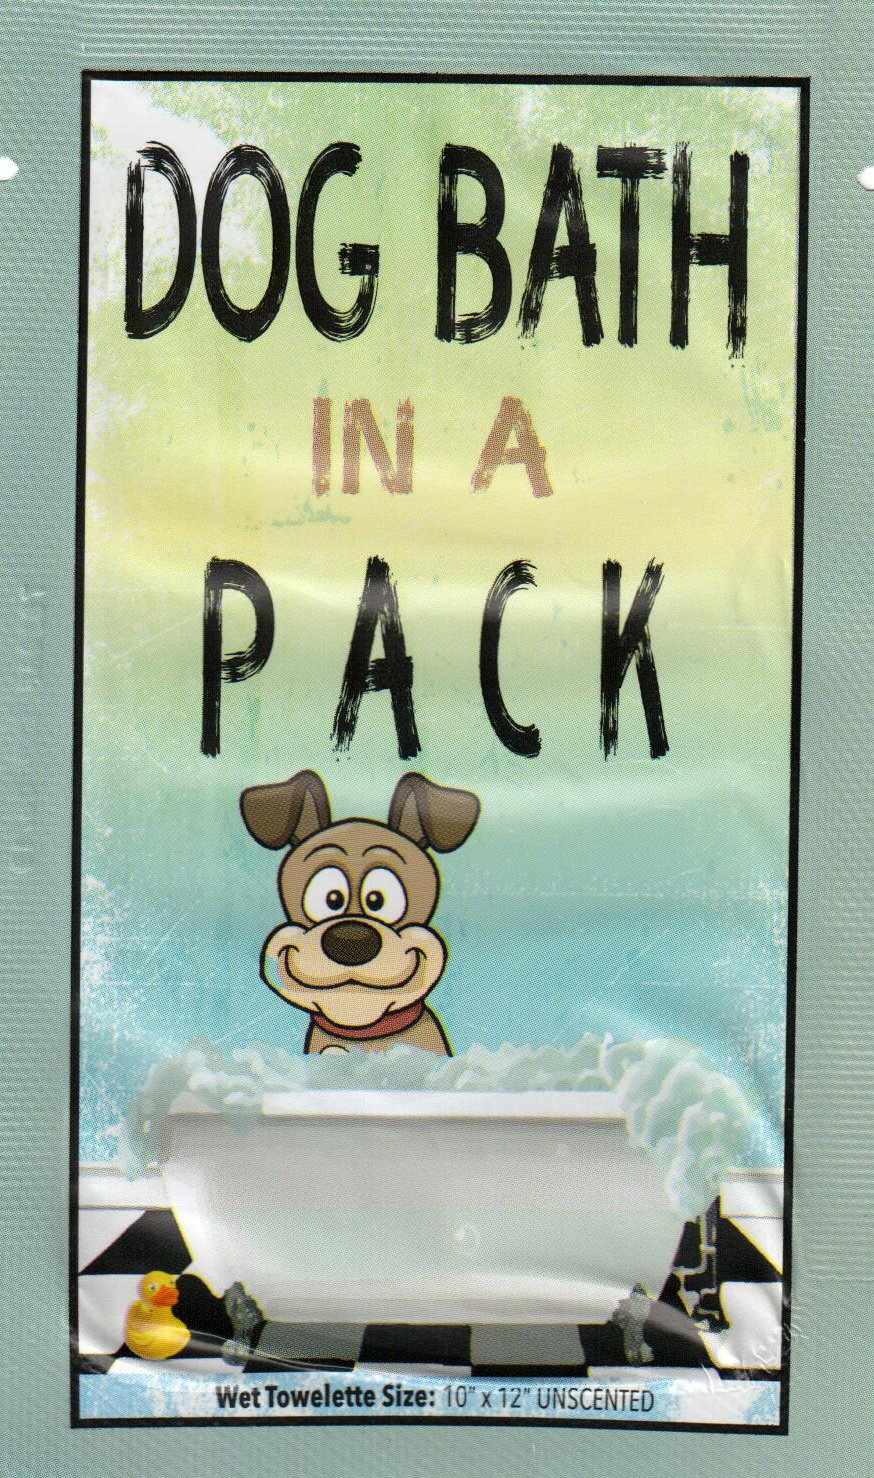 DOG BATH IN A PACK - Largest Bath and Grooming Wipes in Individual PacksNEW Perfect for Travel or When on the GO 40ct.